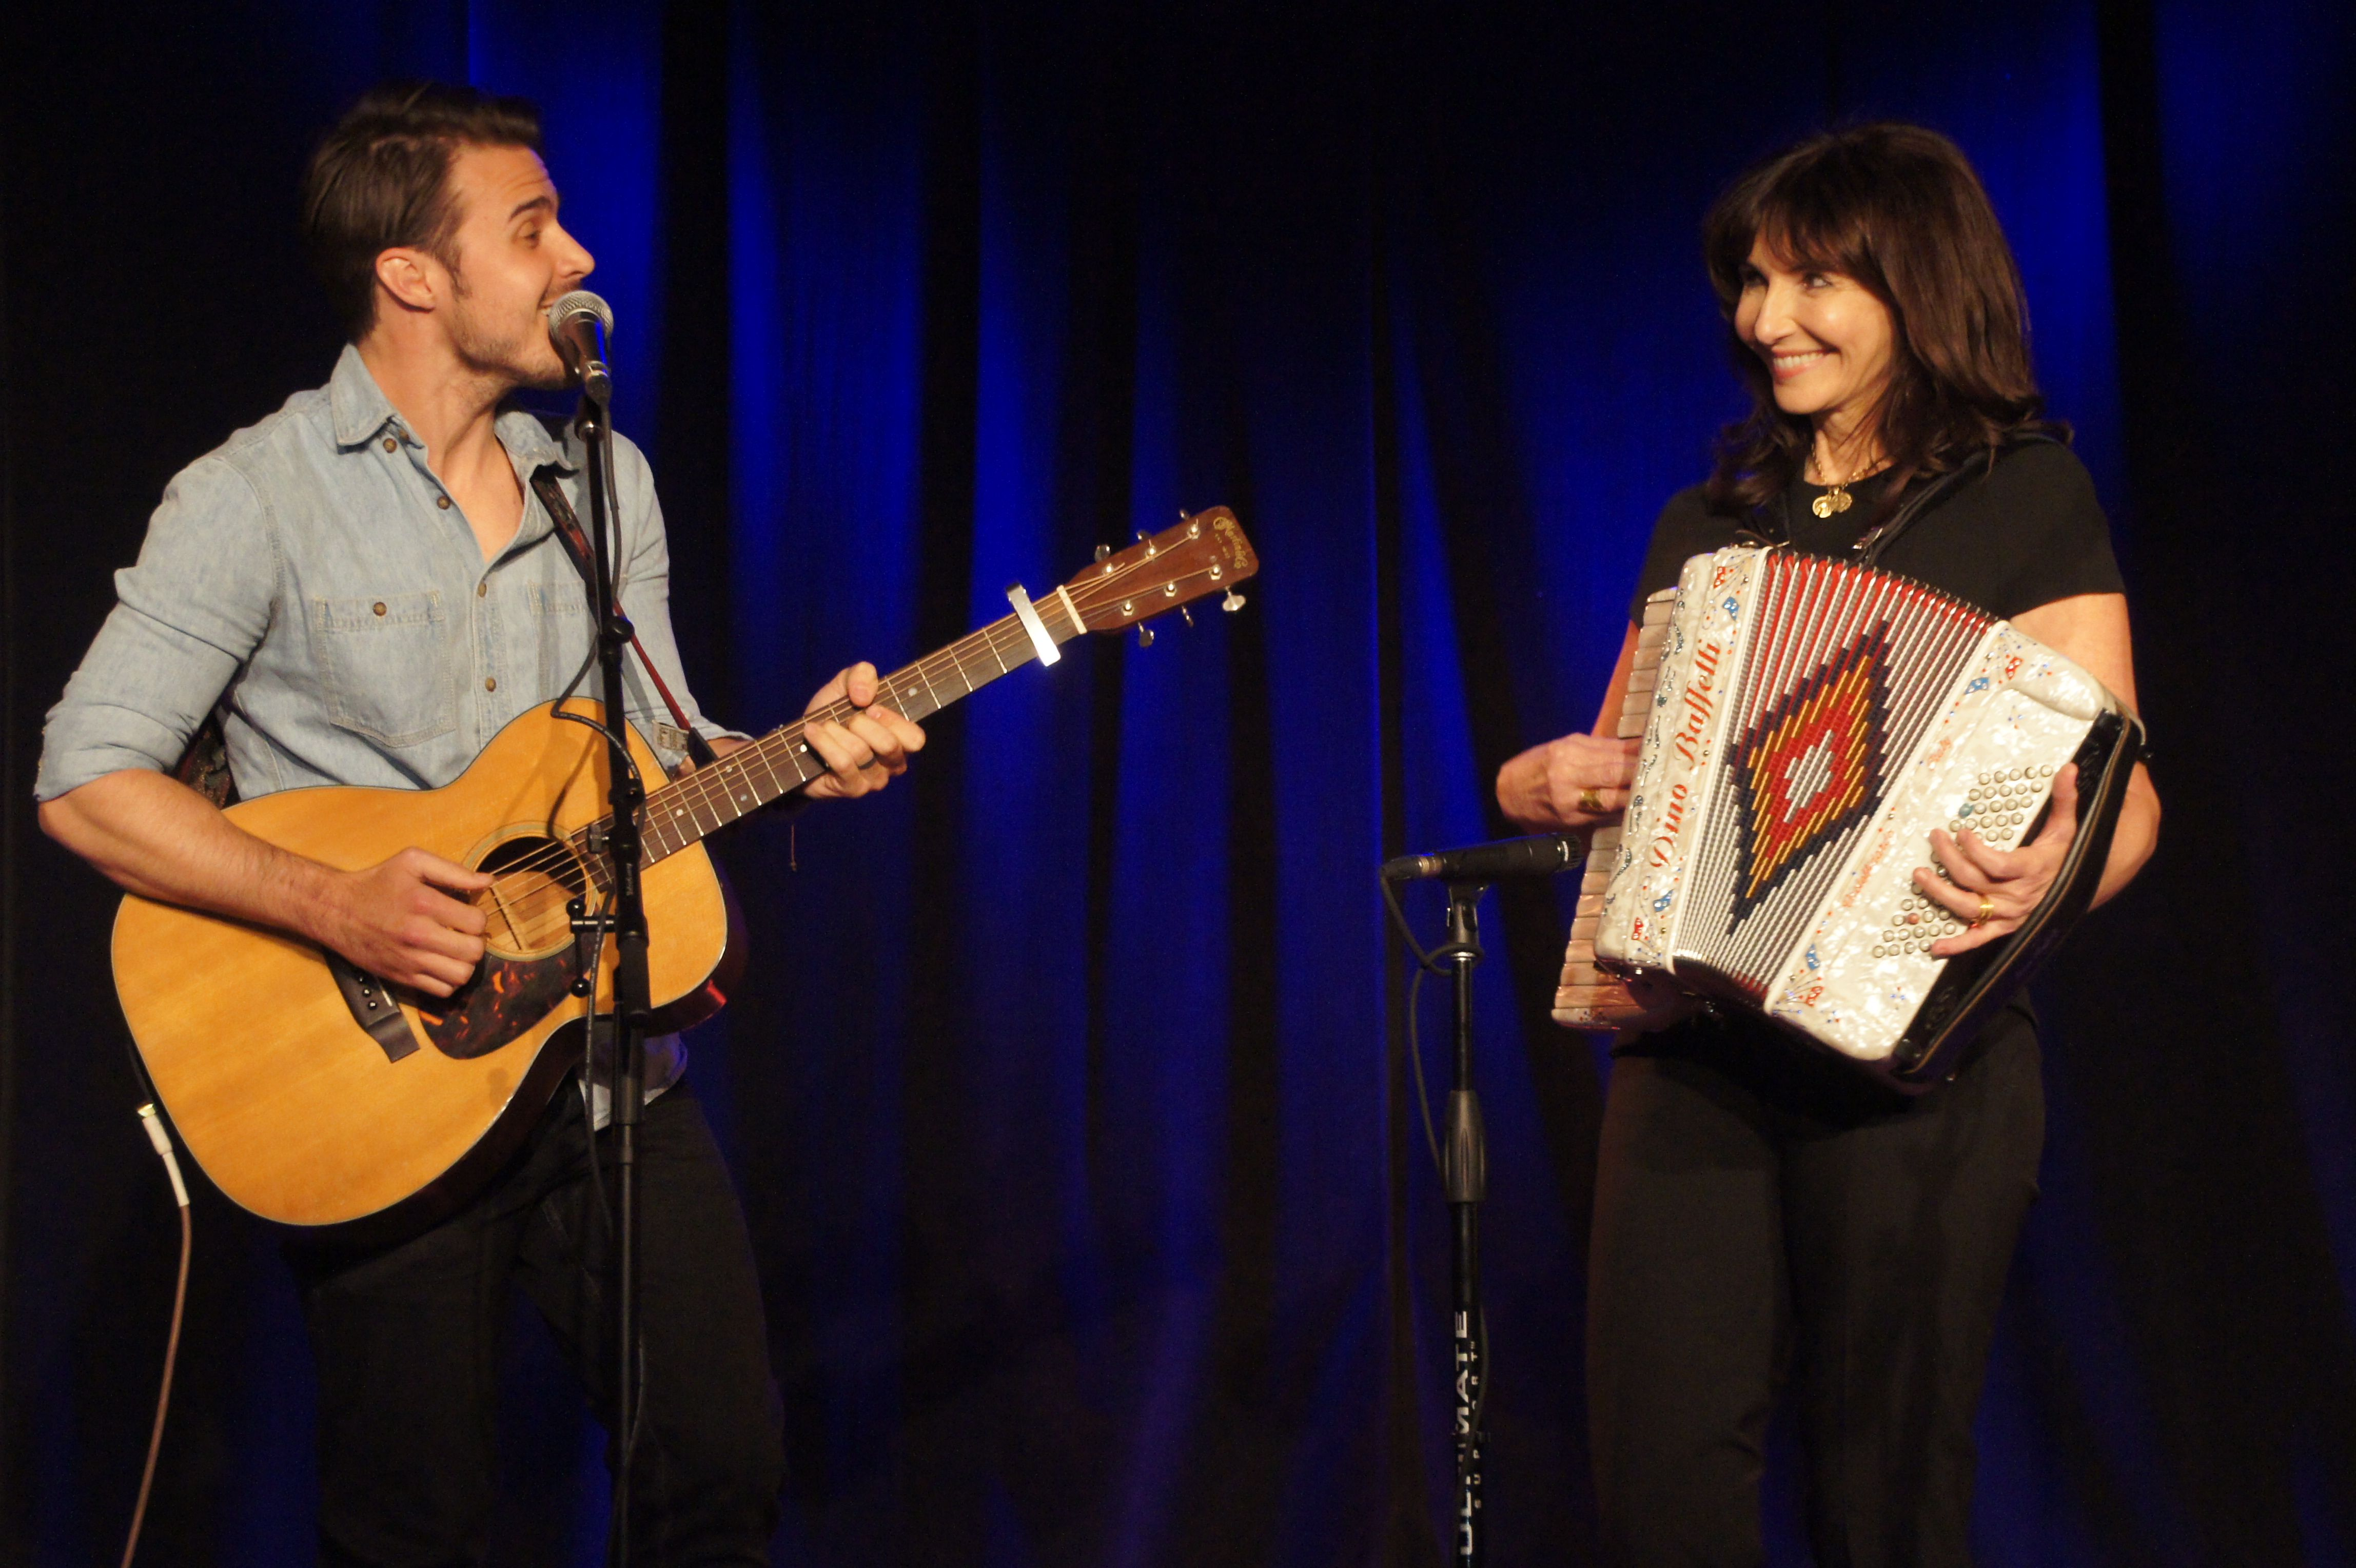 Kris Allen and Mary Steenburgen share the stage at South on Main